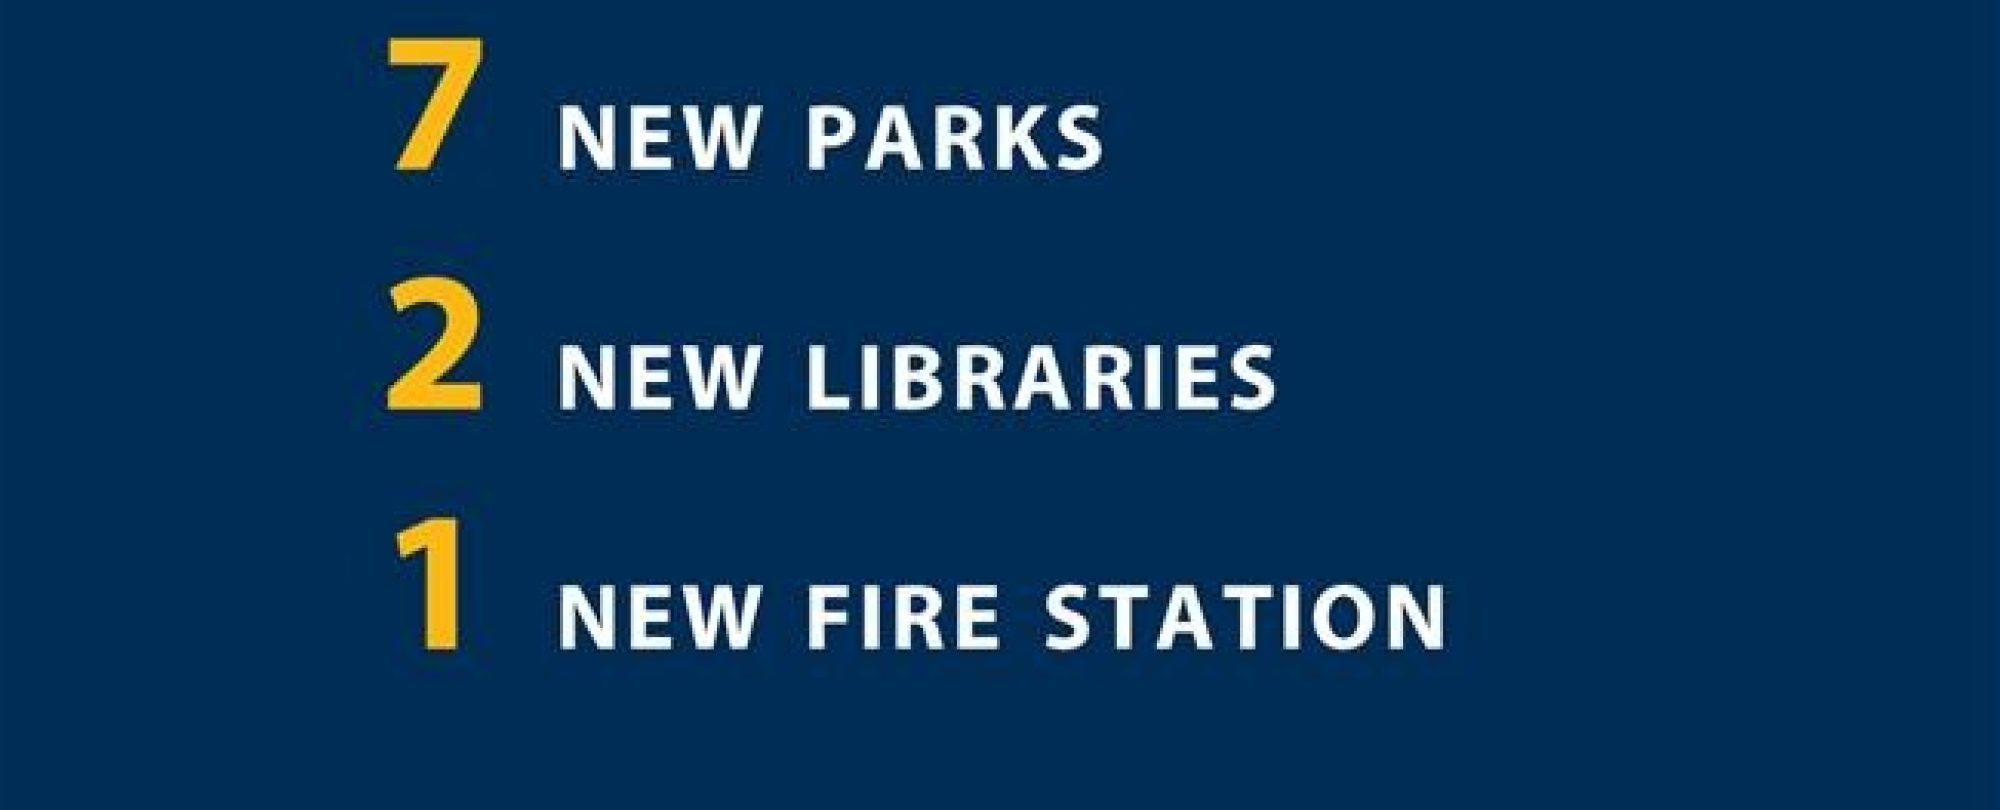 7 new parks. 2 new libraries. 1 new fire station.